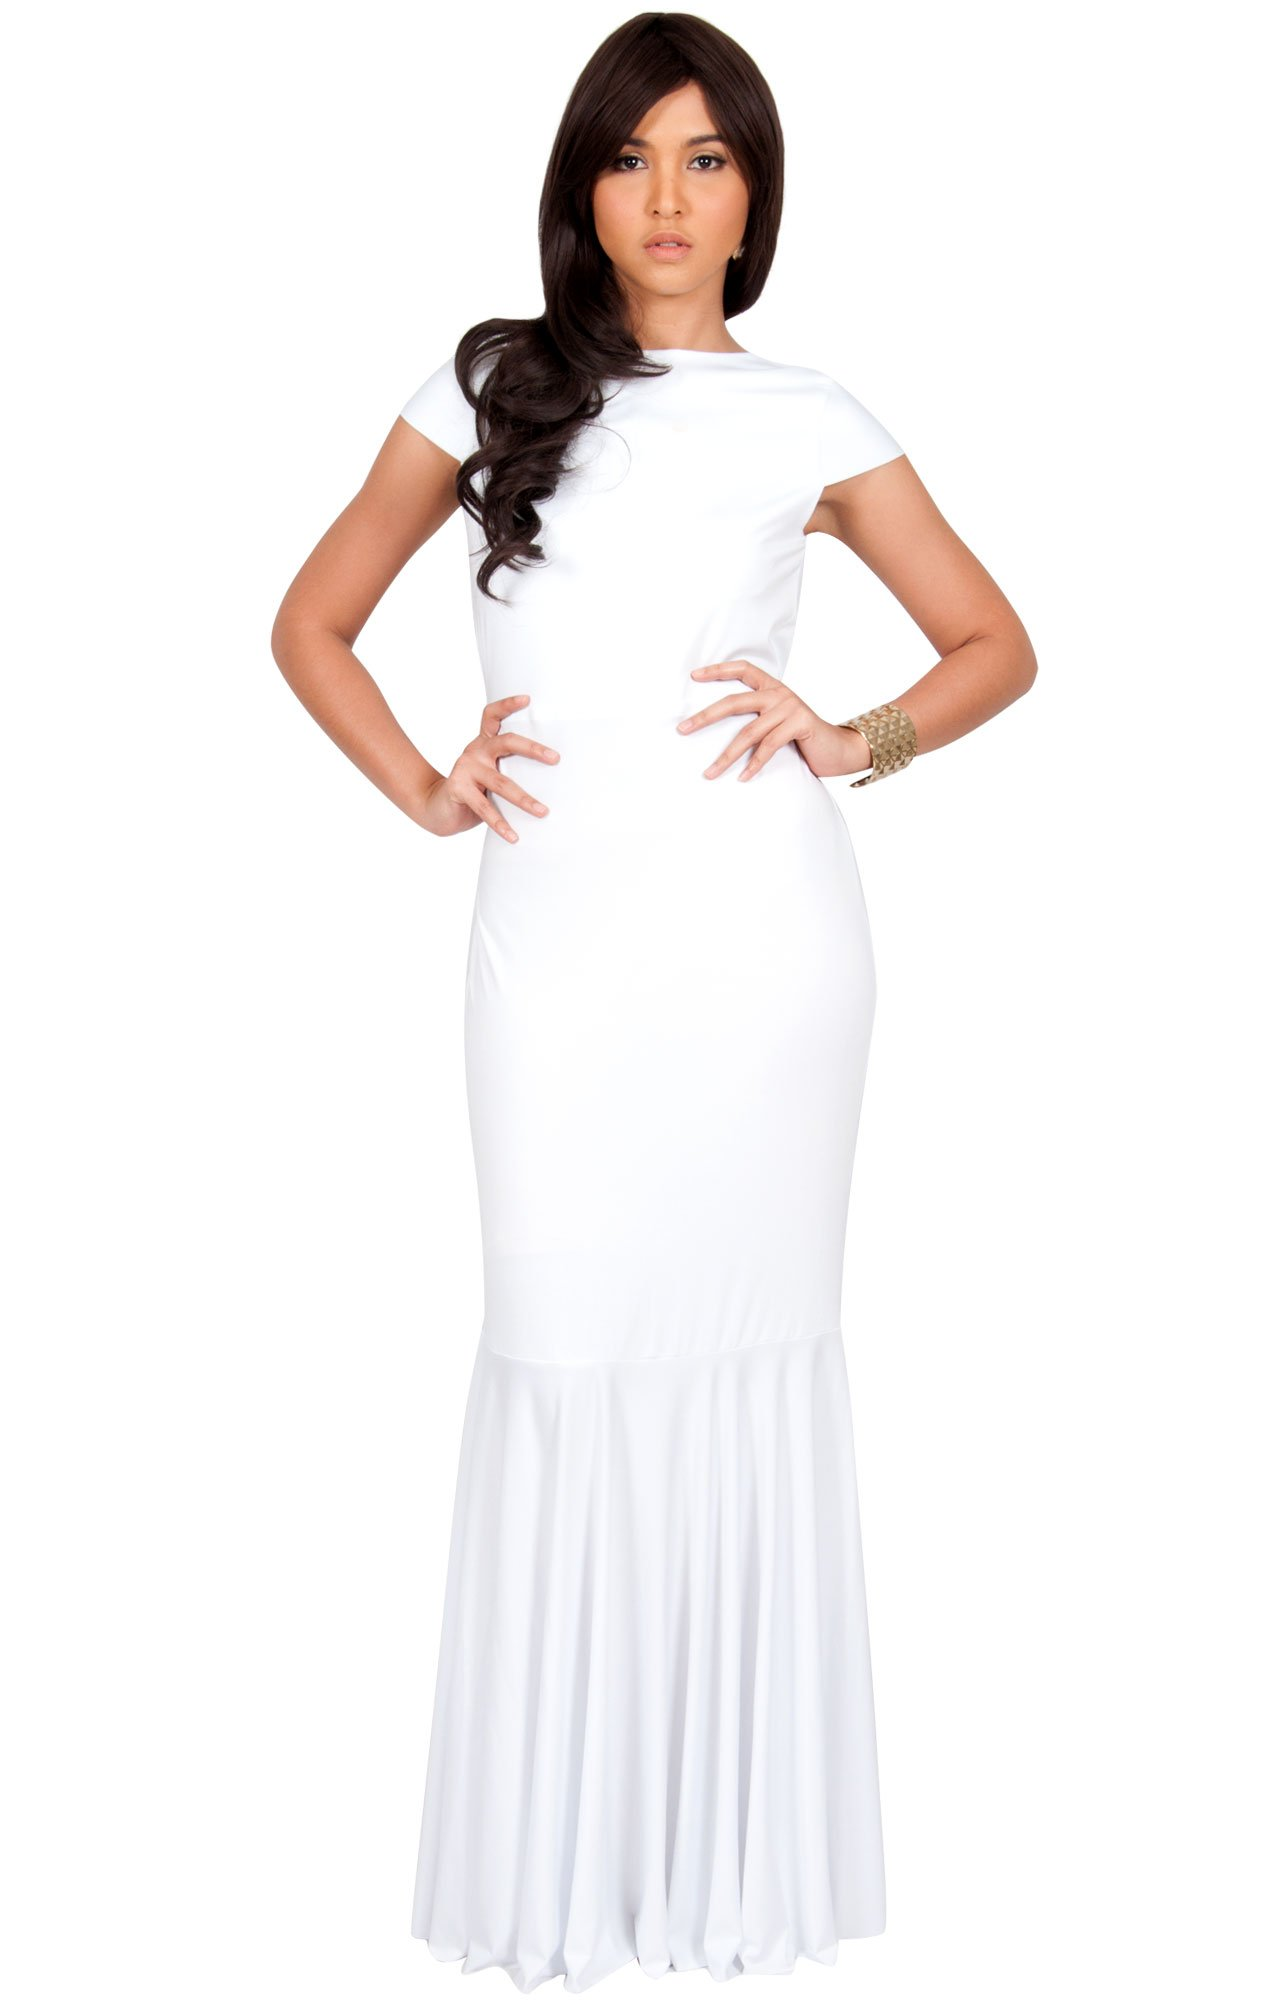 KOH KOH Womens Long Cap Short Sleeve Formal Sexy Evening Prom Cocktail Bridesmaids Wedding Party Guest Tube Flowy Cute Fishtail Gown Gowns Maxi Dress Dresses, White M 8-10